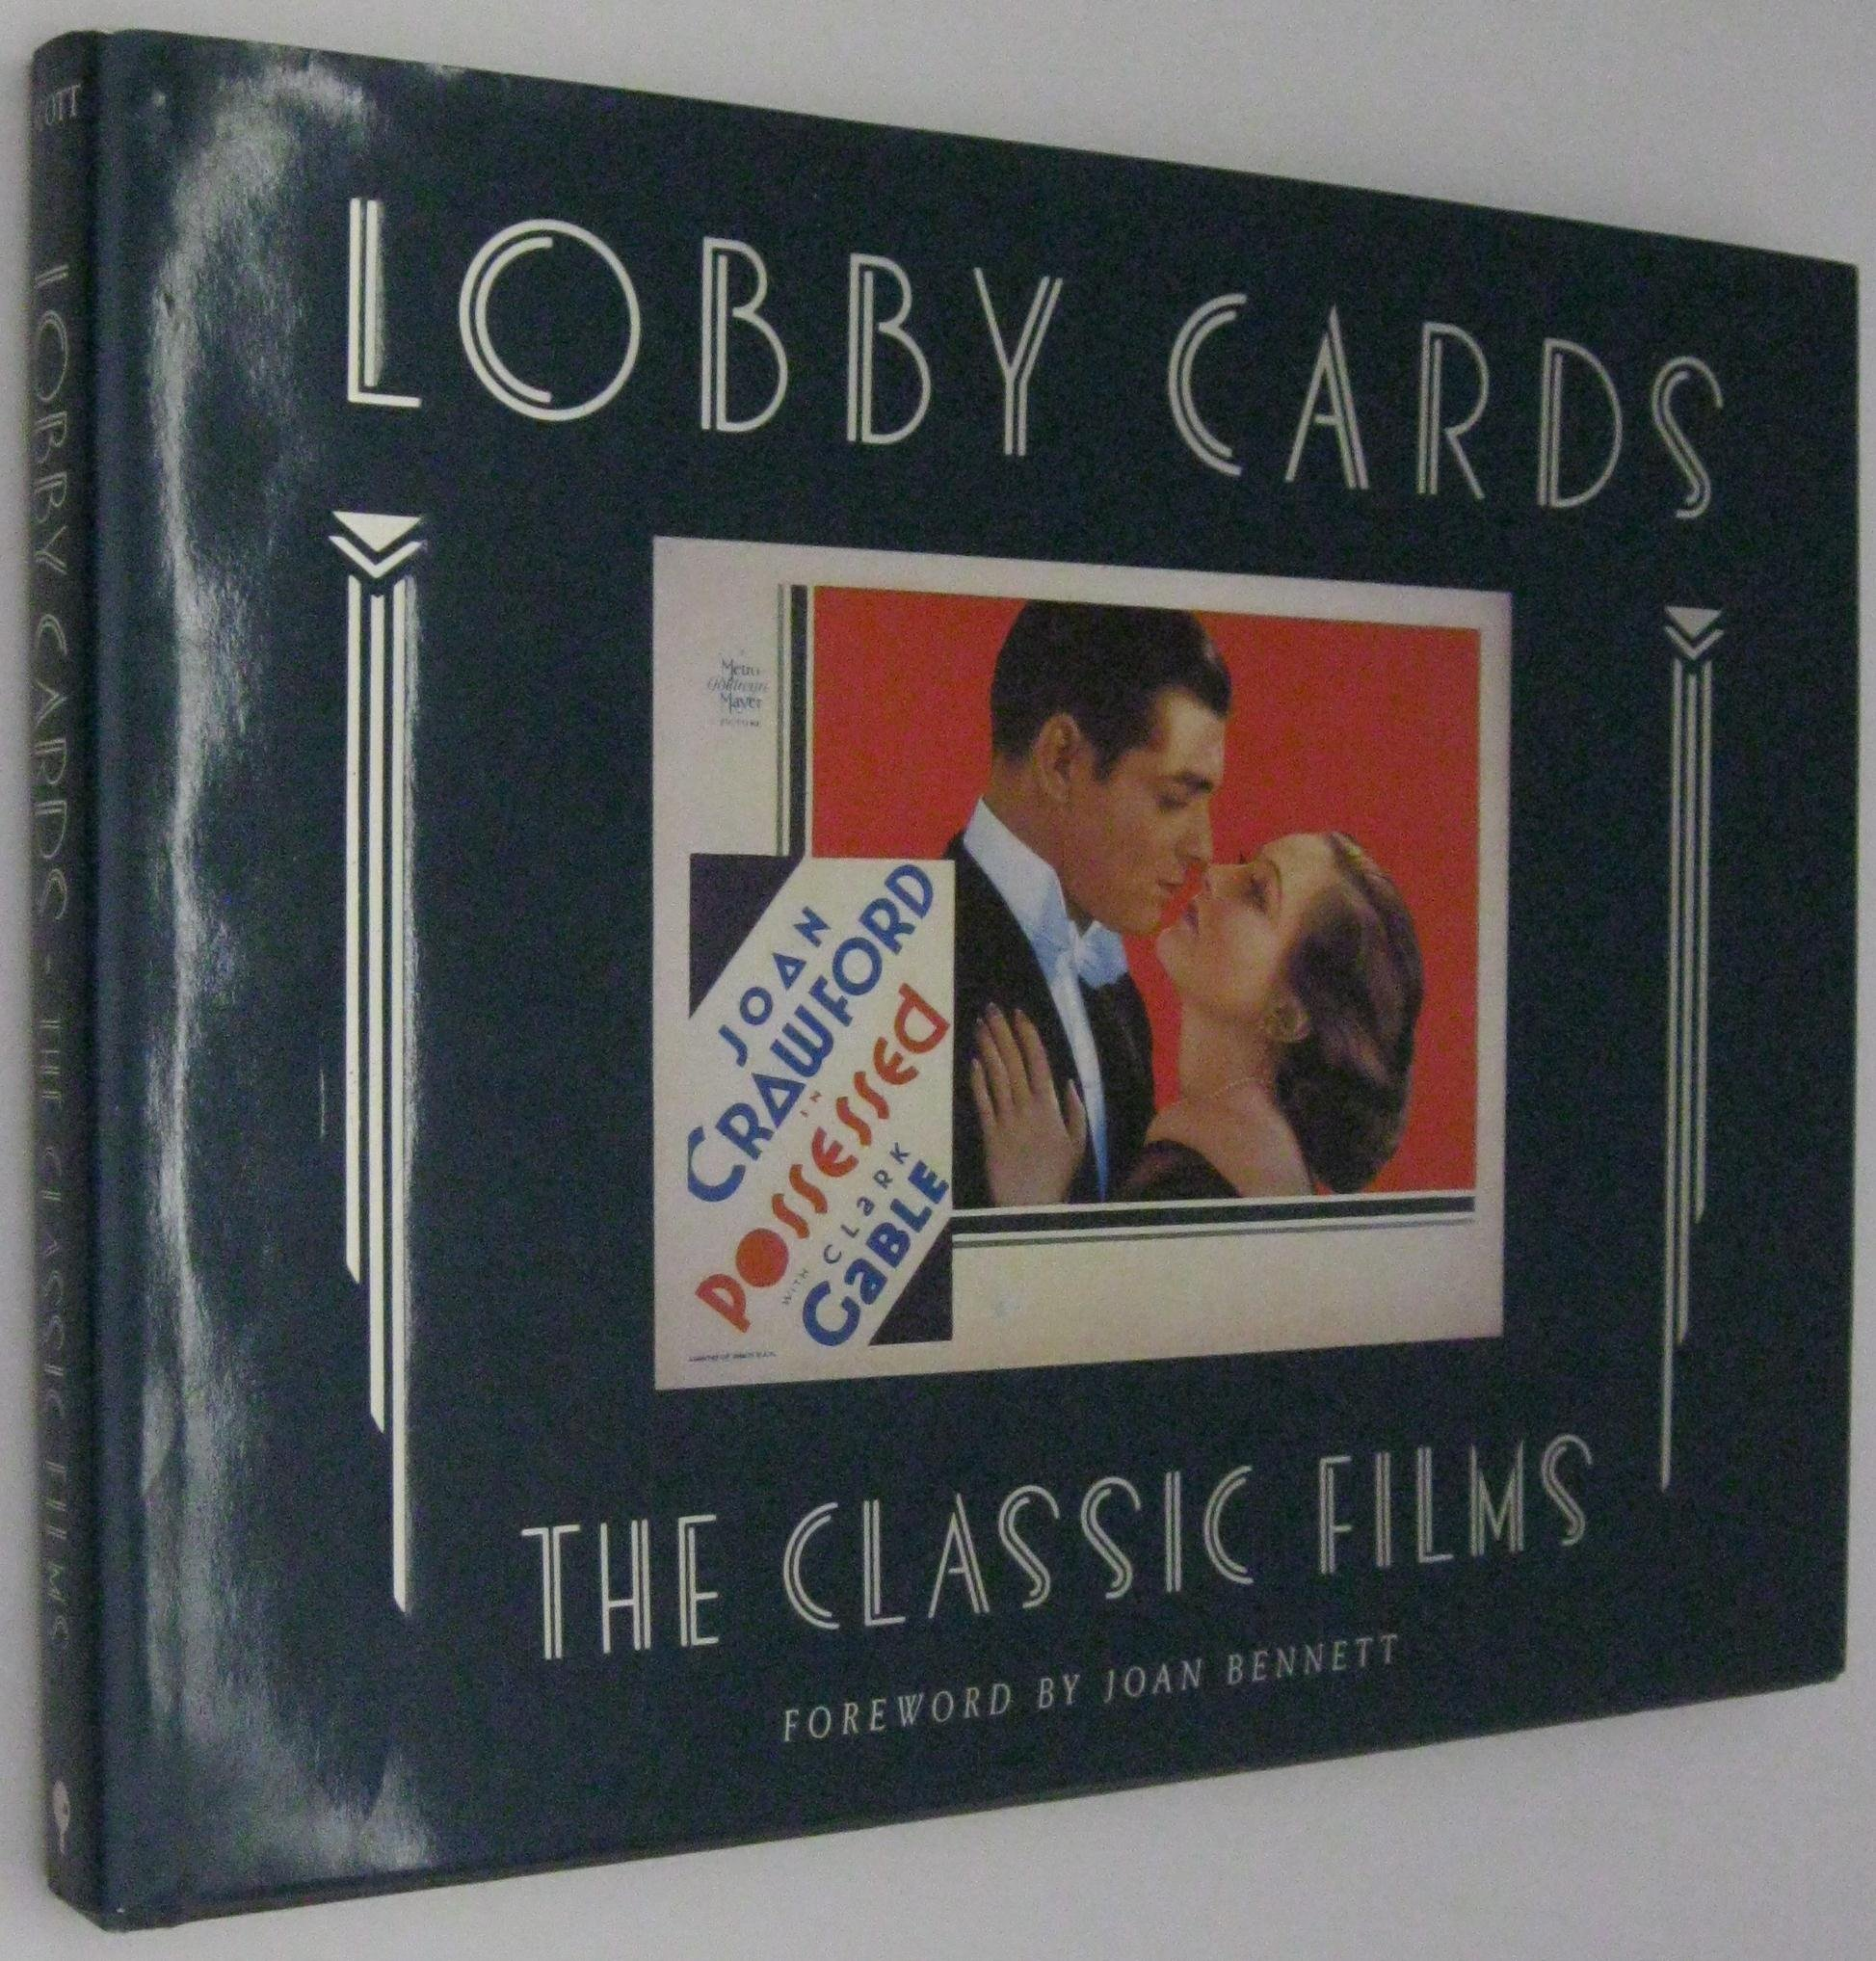 lobby cards classic comedies michael hawks collection vol ii